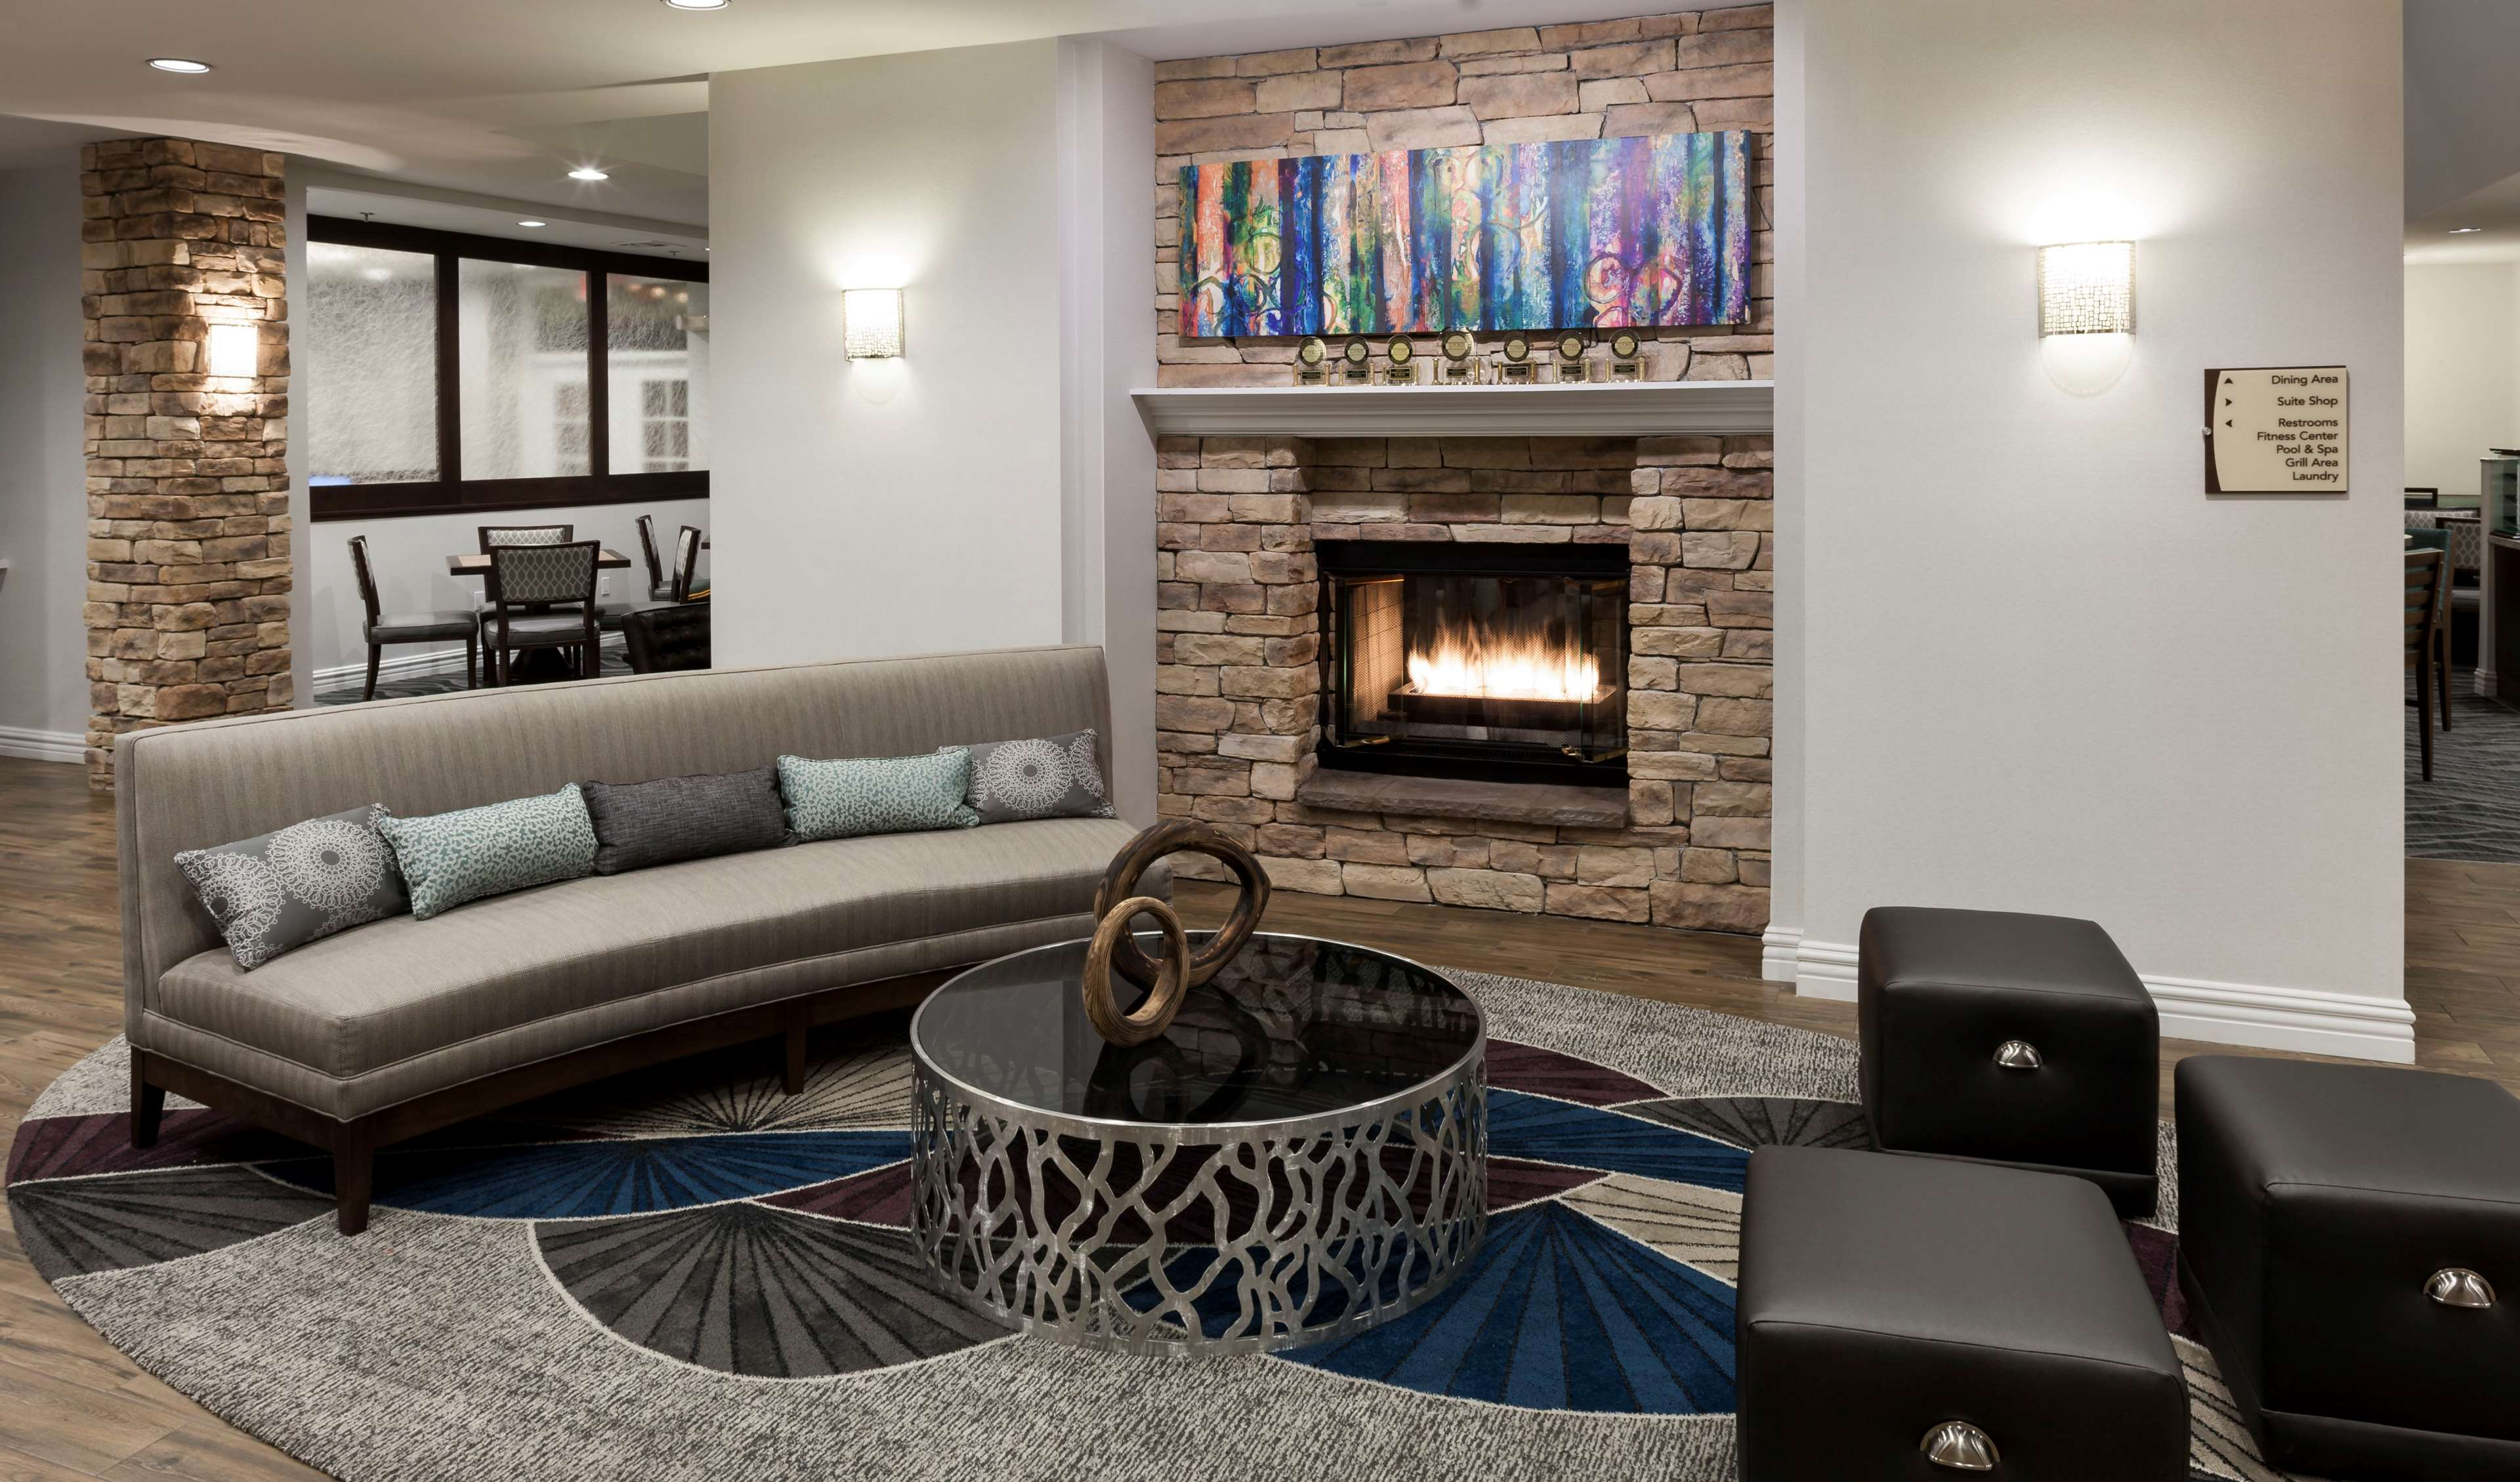 Homewood Suites by Hilton San Jose Airport-Silicon Valley image 2